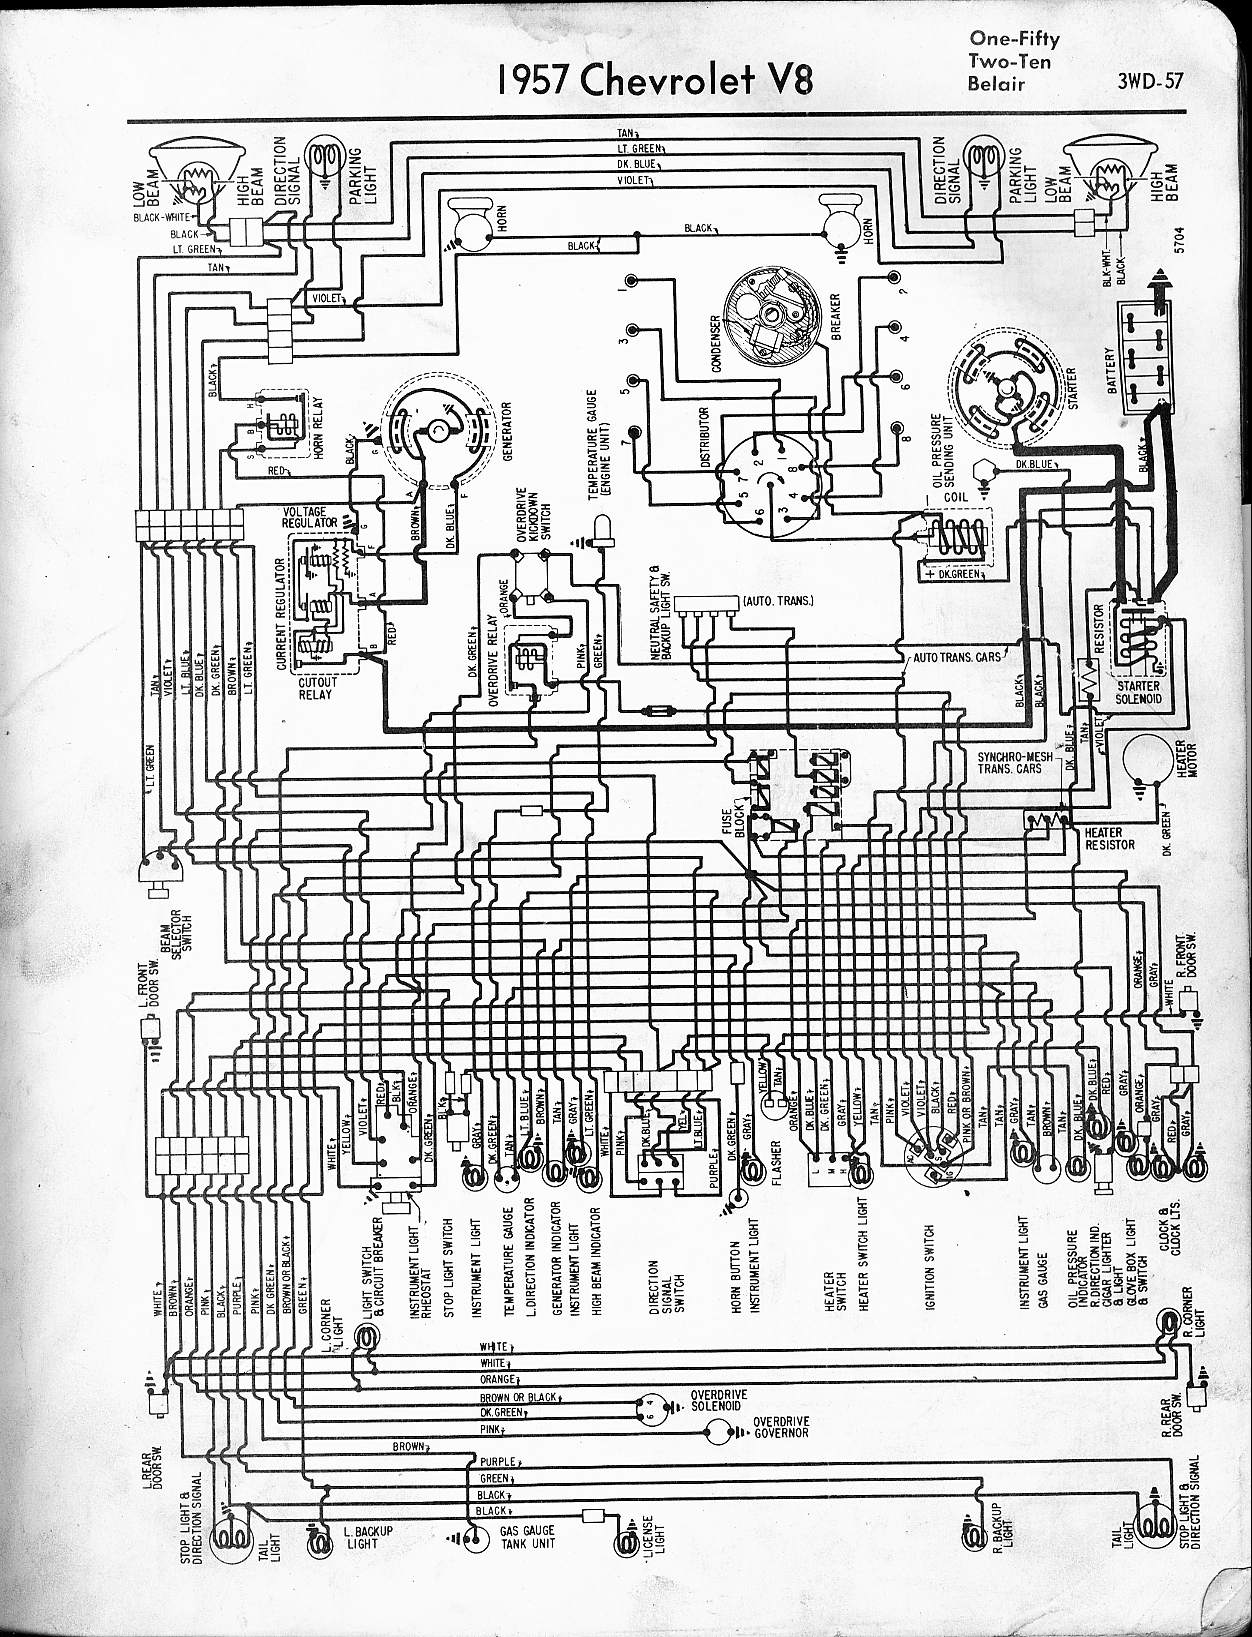 MWireChev57_3WD 057 57 65 chevy wiring diagrams 1957 plymouth wiring harness at nearapp.co